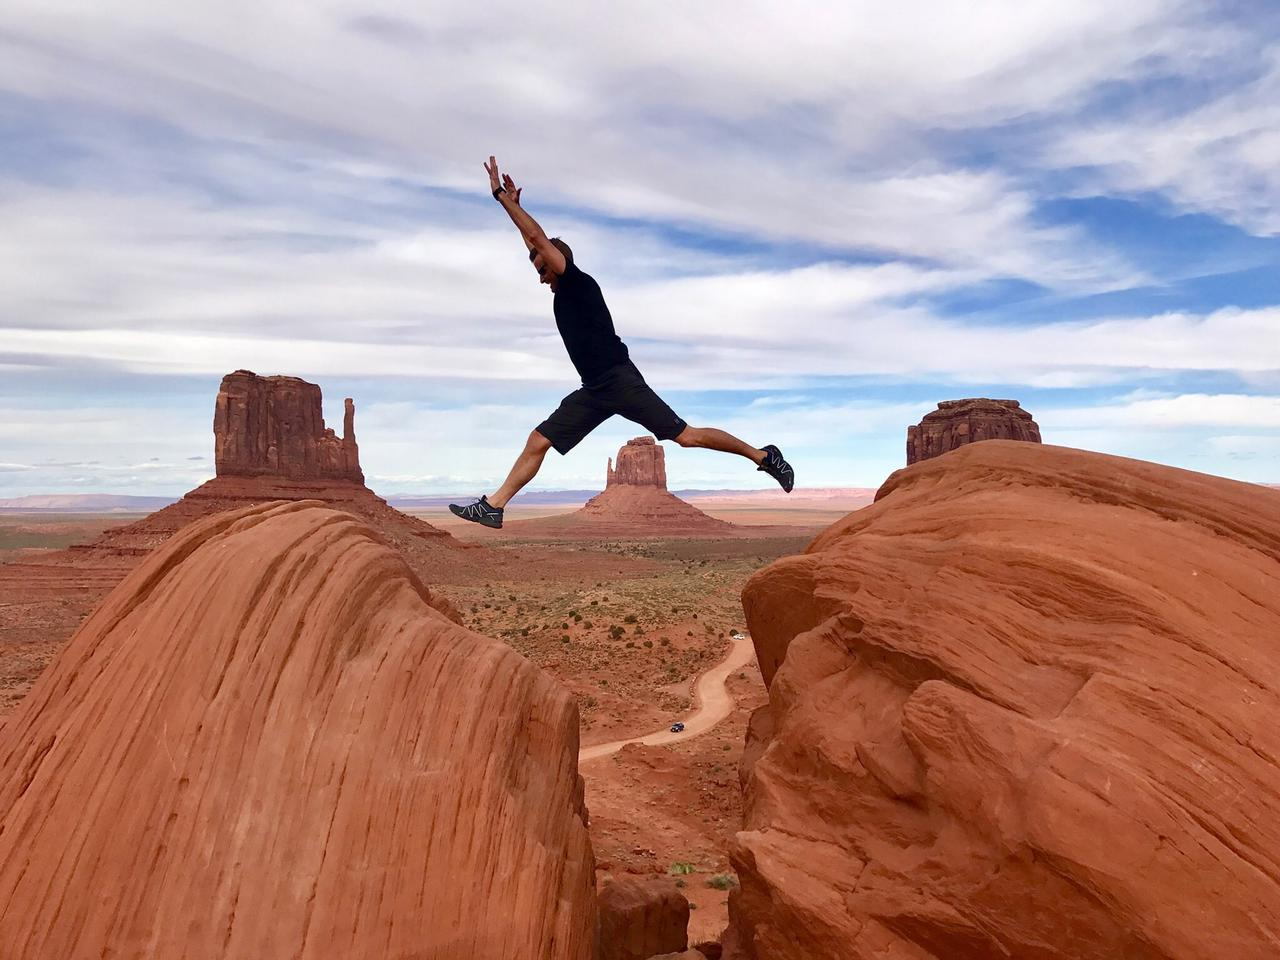 We were on a road trip with the fam, and got a chance to visit monument valley. Wonderful place